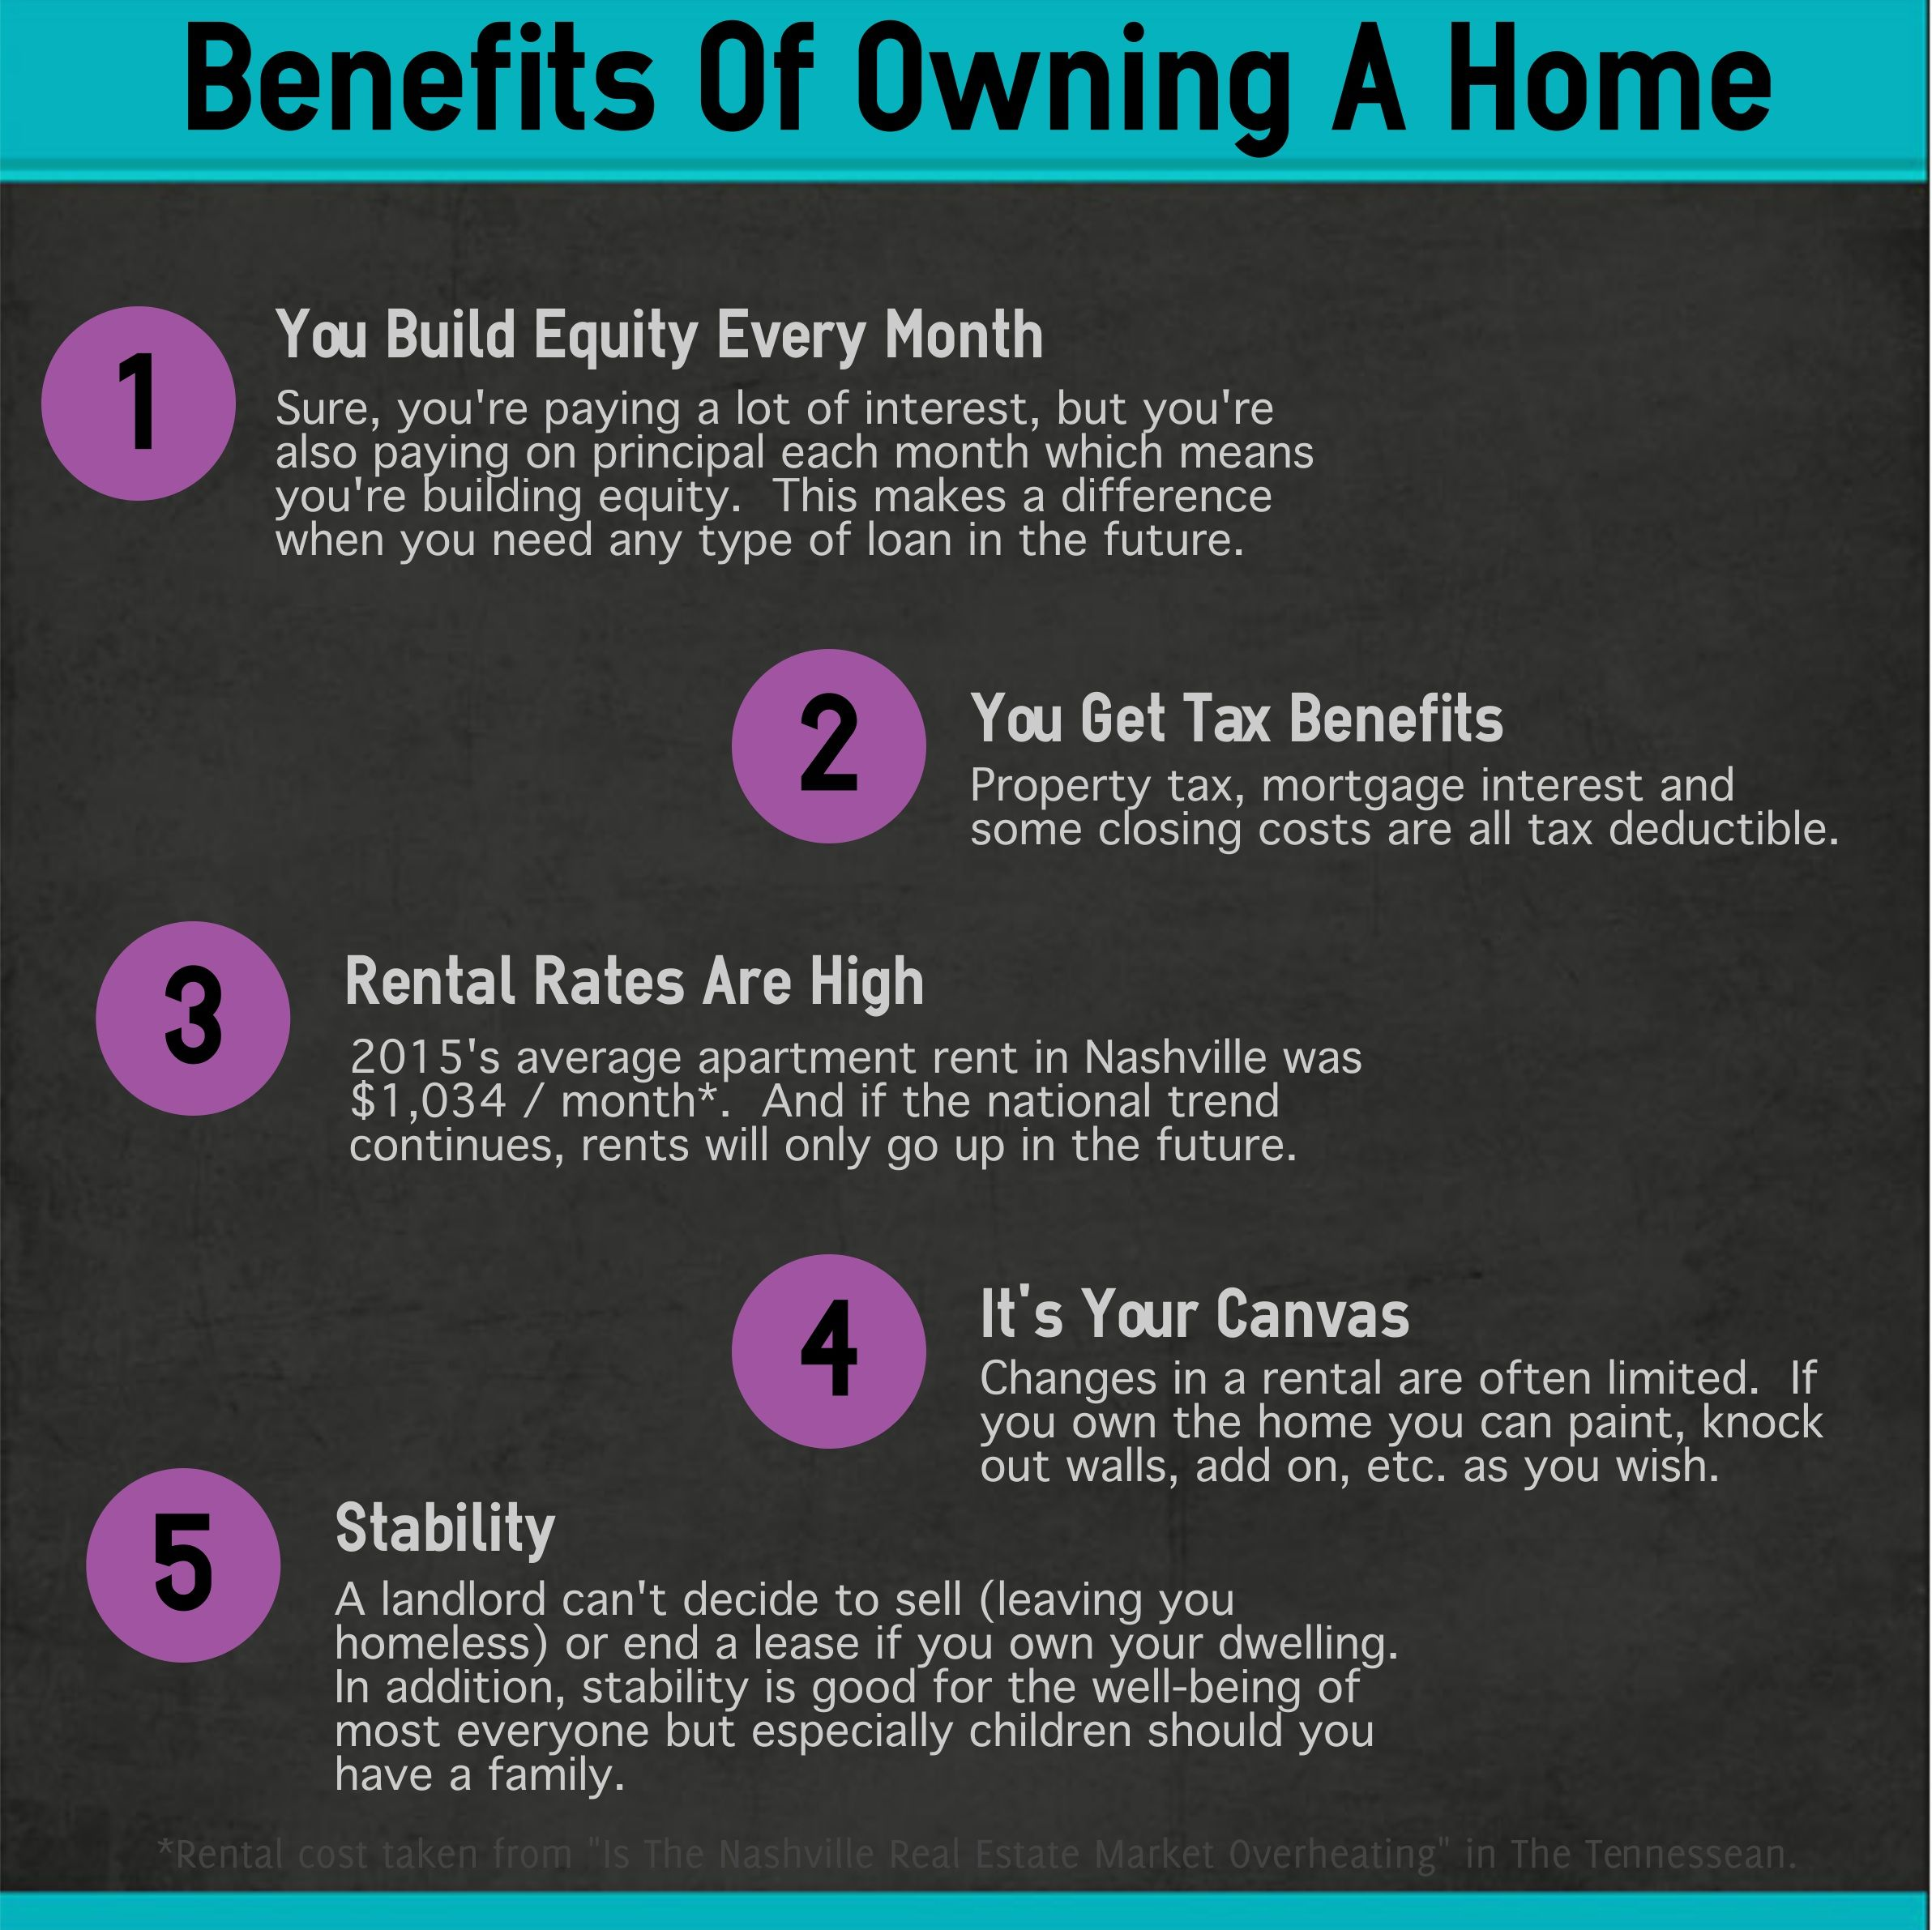 Benefits Of Owning A Home #Home #RealEstate #Buyer #UnparalleledExcellence